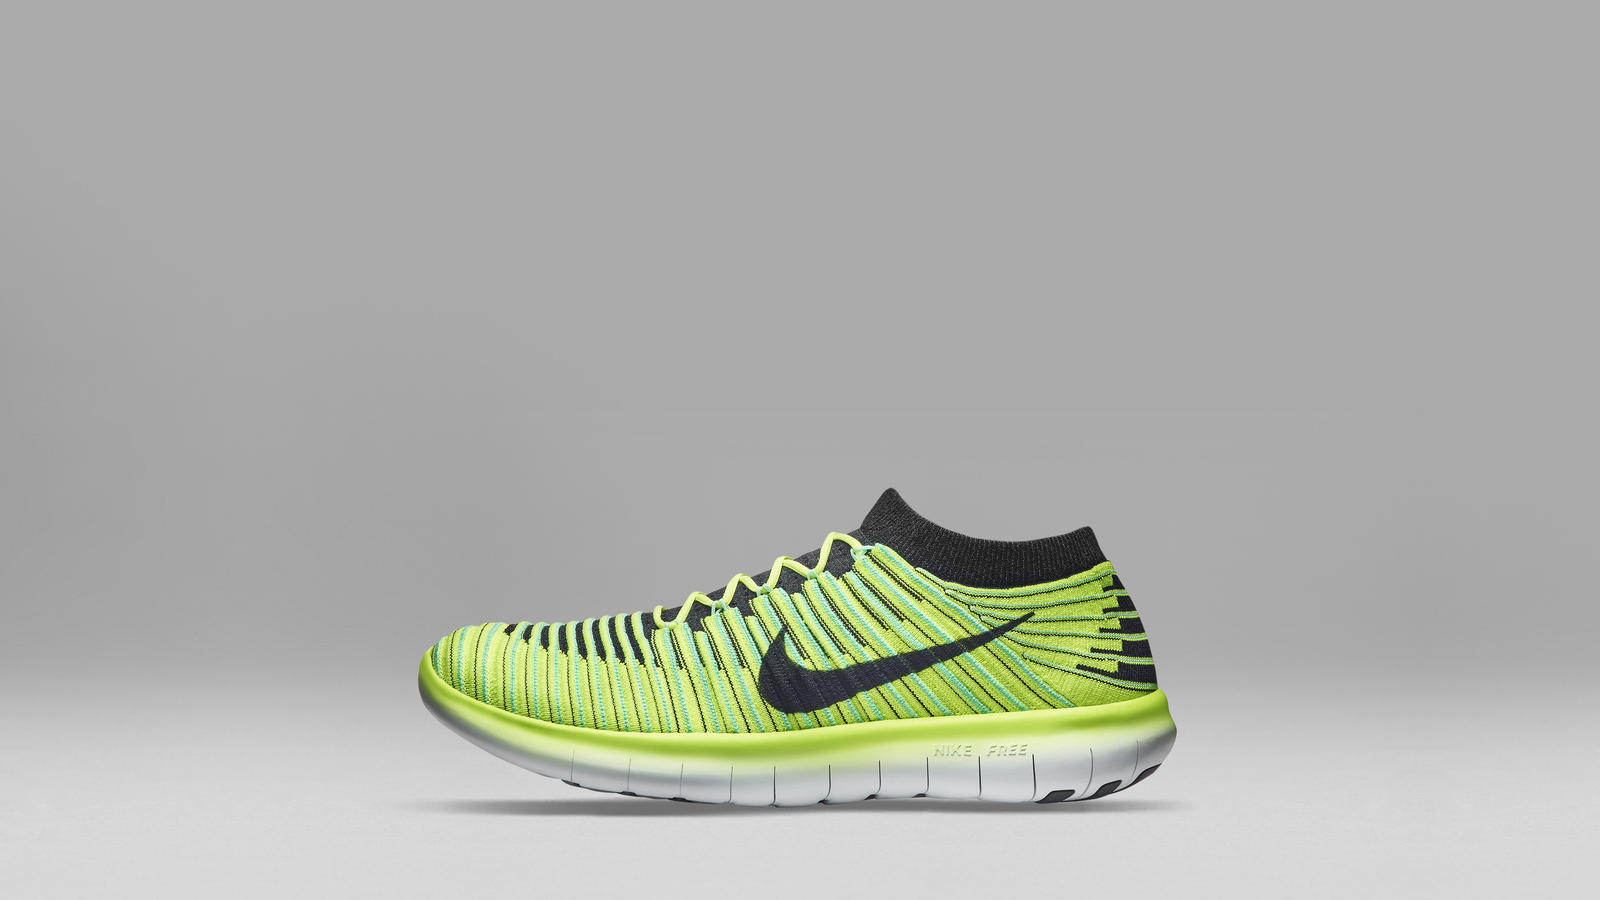 ef61ed08324 Nike Free RN Motion Flyknit Evolves the Nike Free Legacy - Nike News